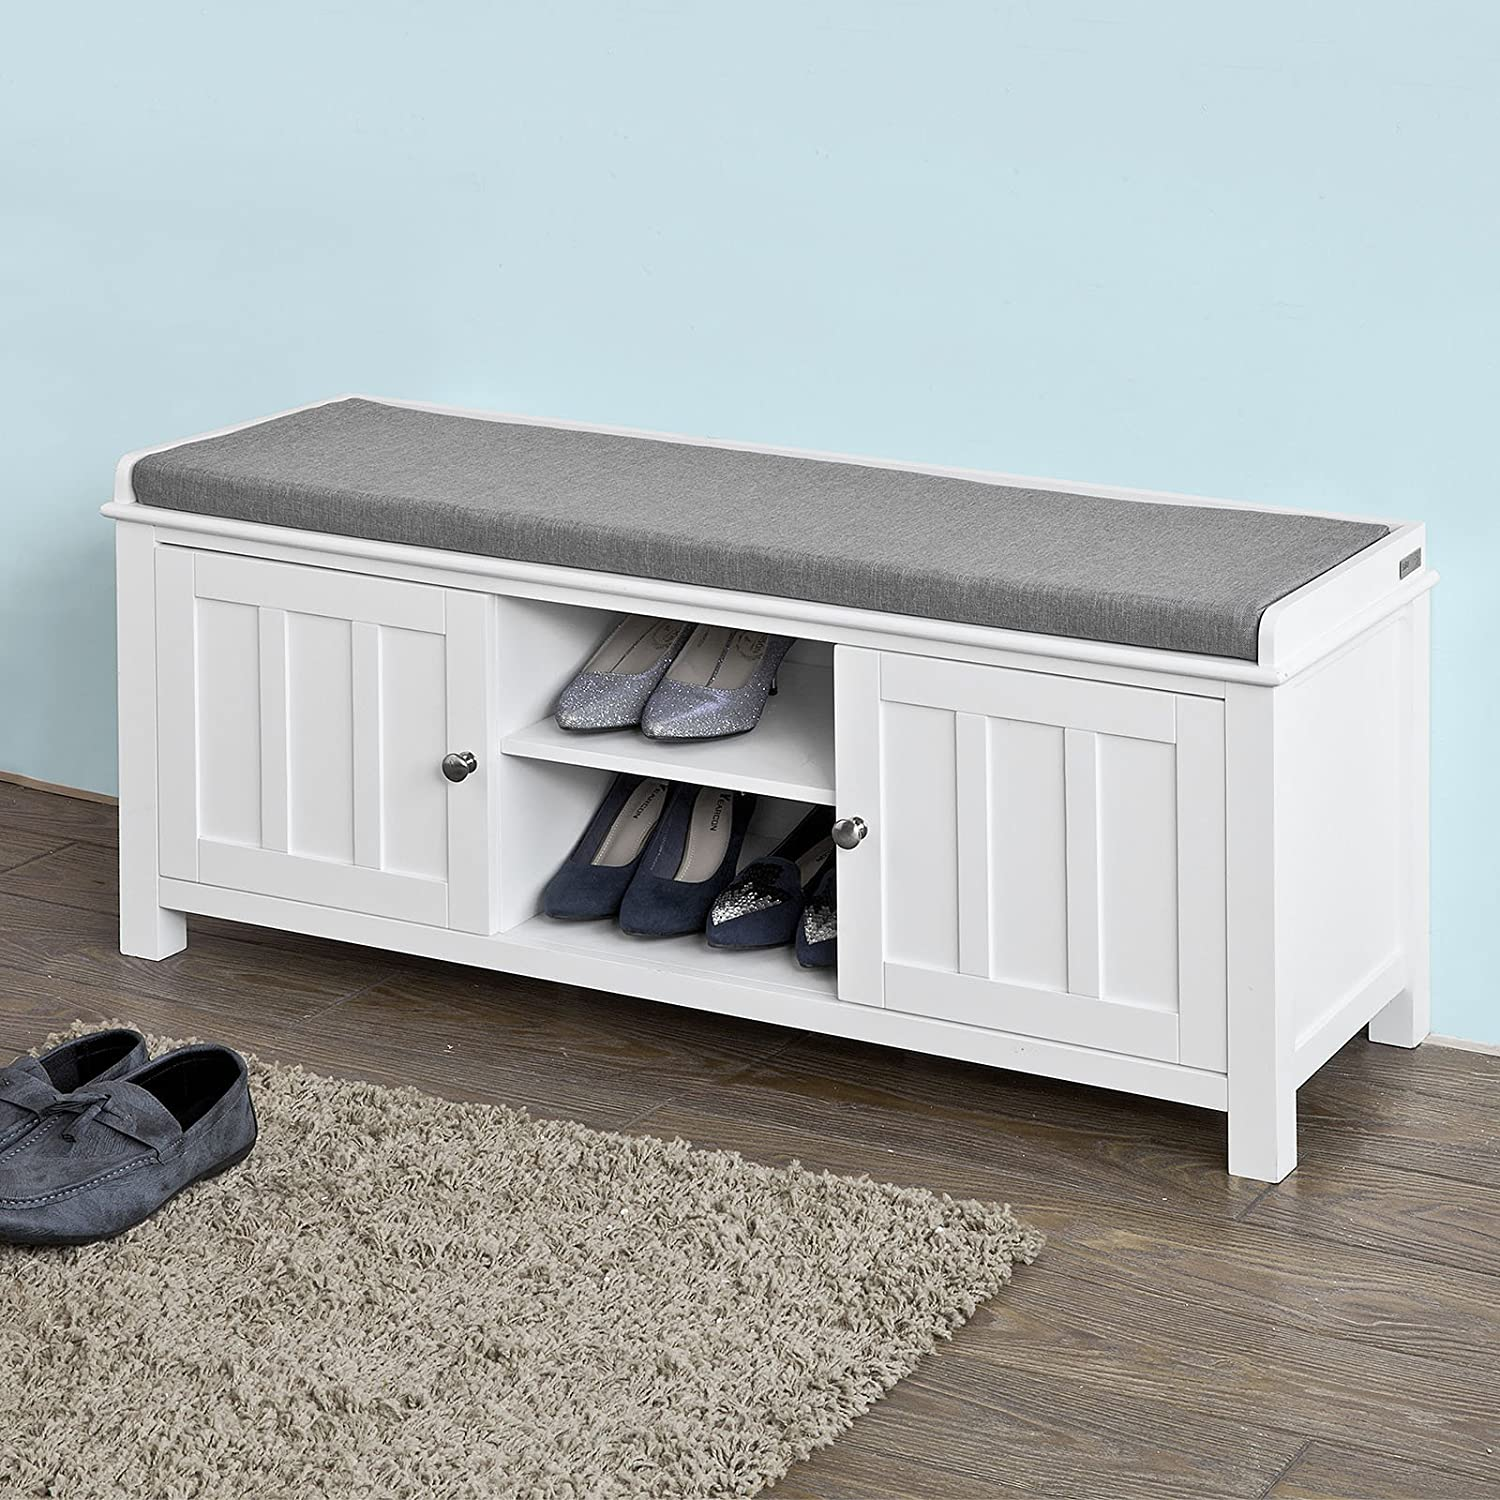 Antique Grey Entryway Storage Bench with Cushioned Seat Shoe Rack with 2 Drawers and Storage Shelf